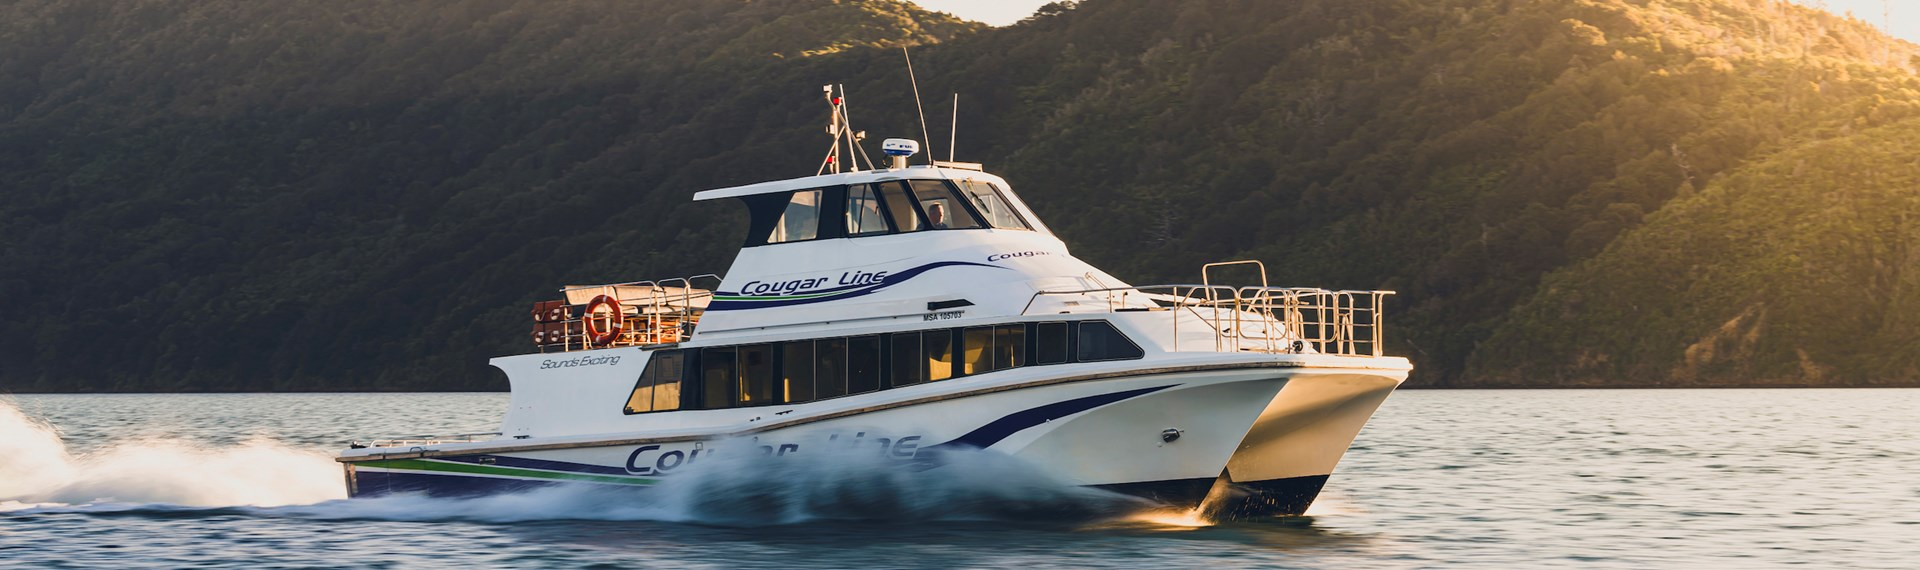 Cougar Line boat Sounds Exciting cruises through calm waters in Queen Charlotte Sound/Tōtaranui, Marlborough Sounds, New Zealand